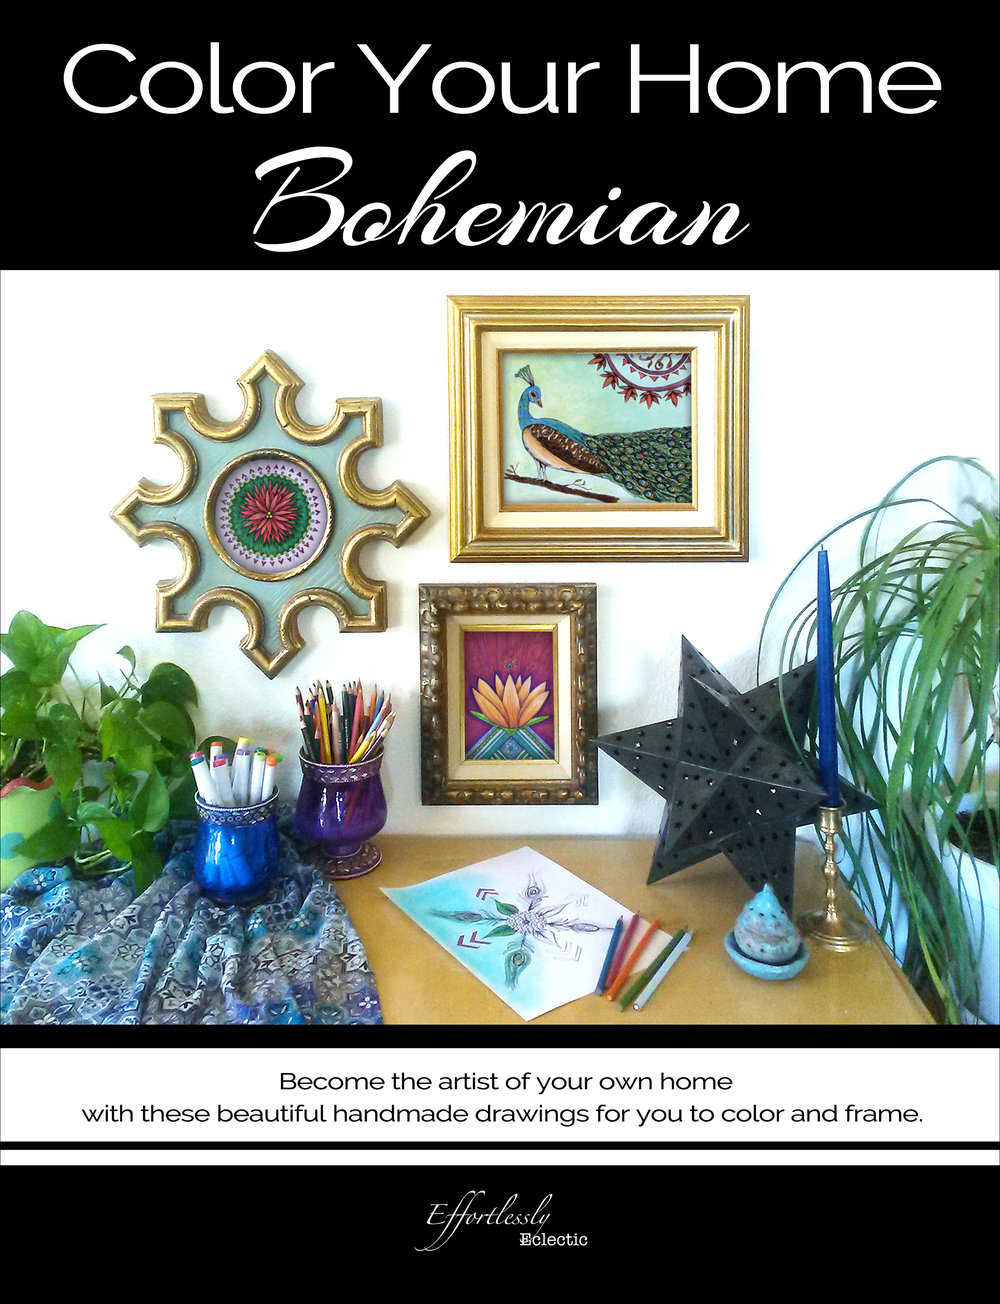 Adult coloring book / DIY home decor book Color Your Home Bohemian by Stacey Taylor of Effortlessly Eclectic